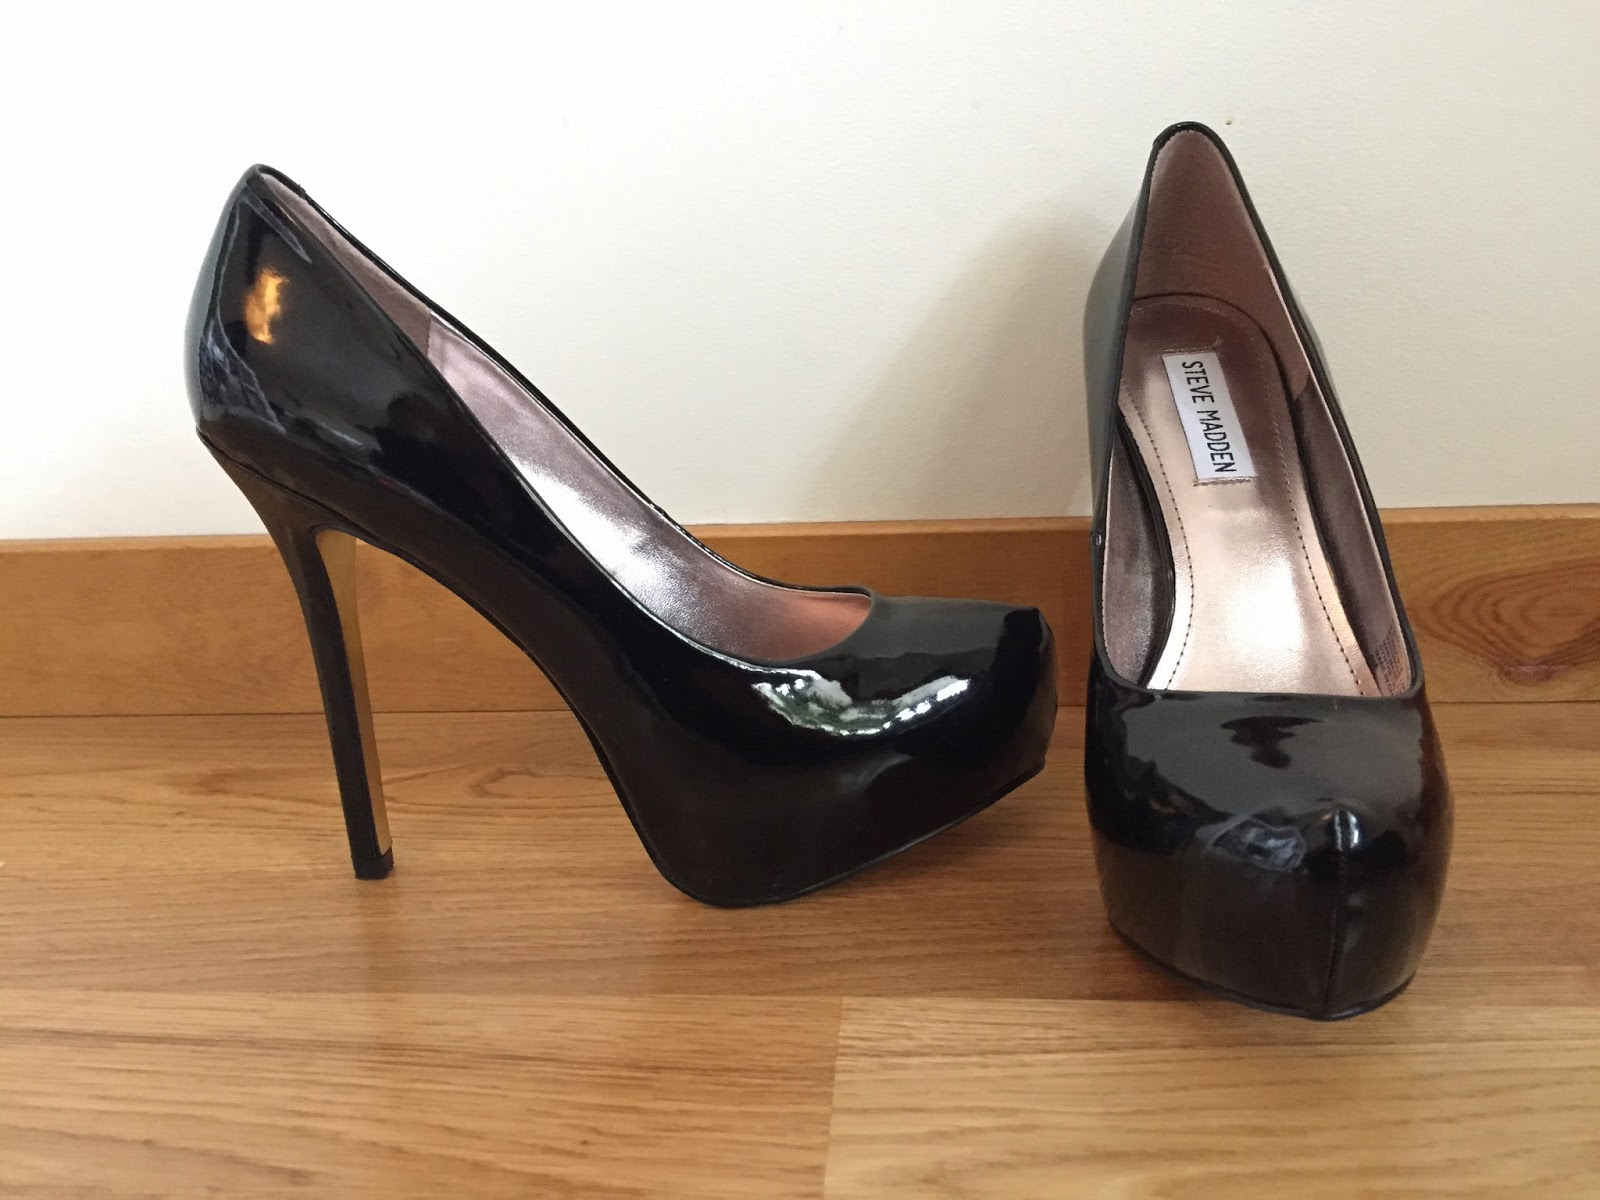 Pumps from Steve Madden, bought at ASOS.com